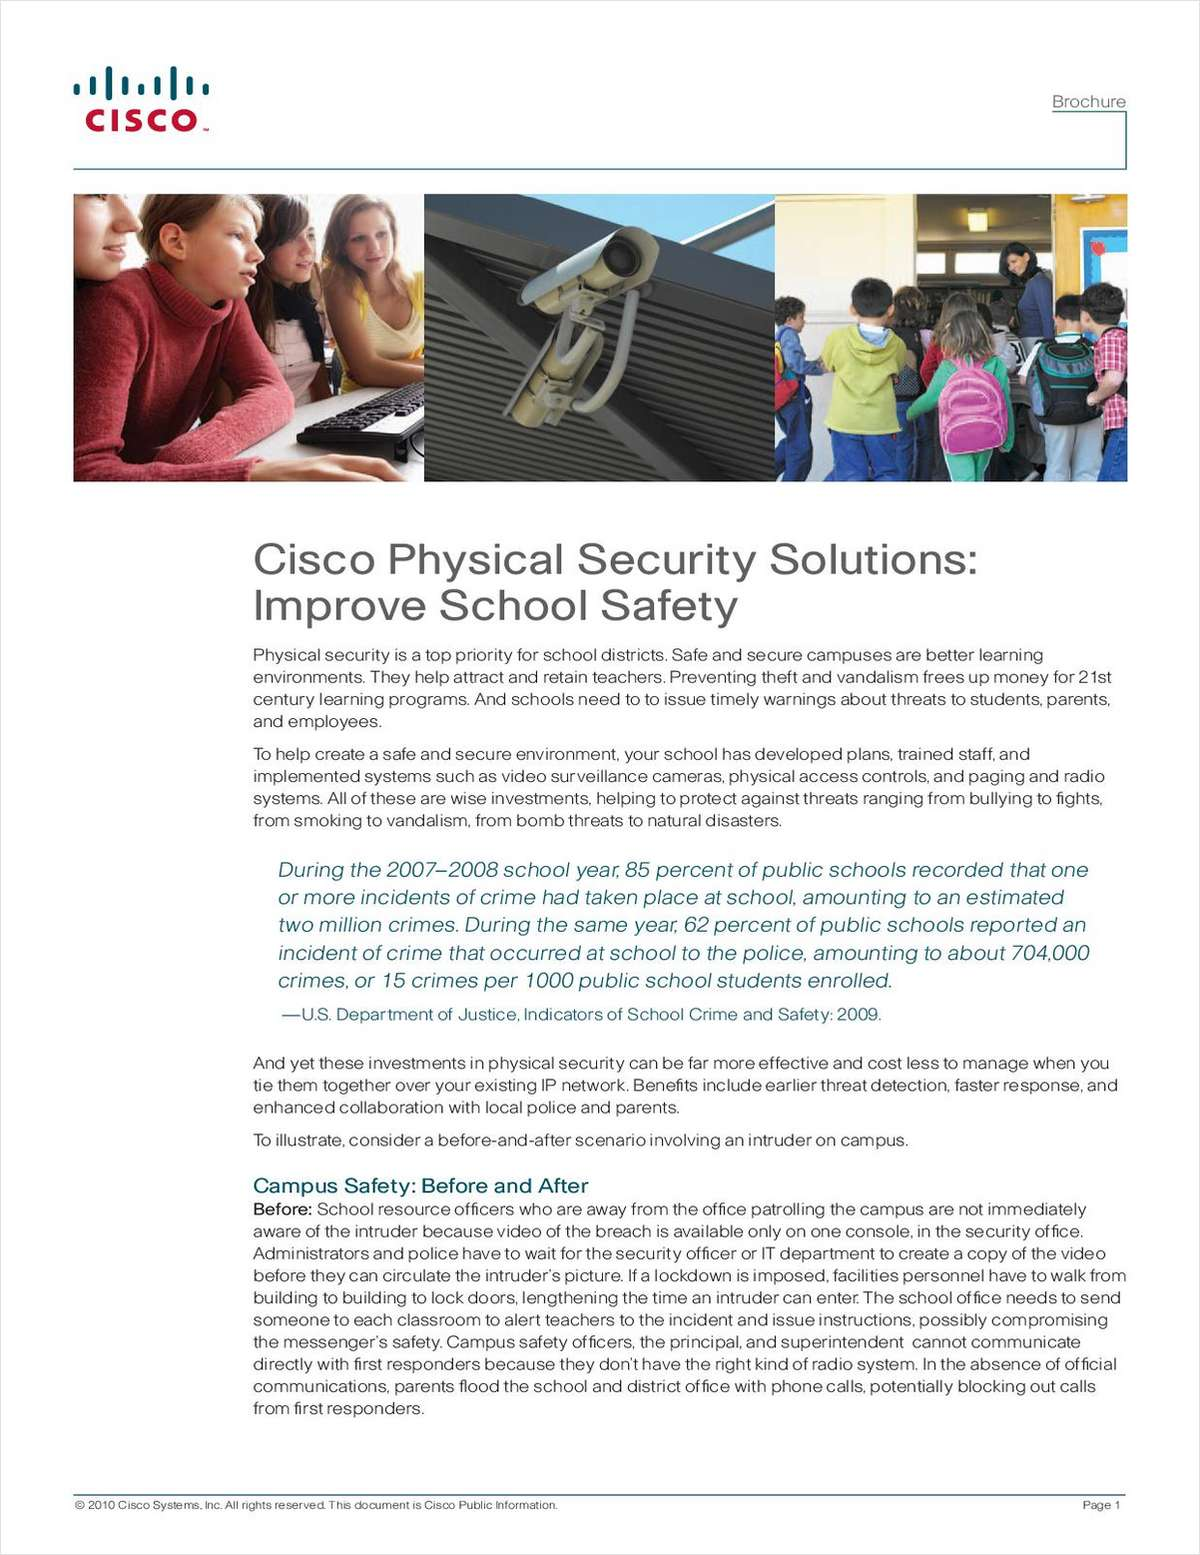 Cisco Physical Security Solutions: Improve School Safety